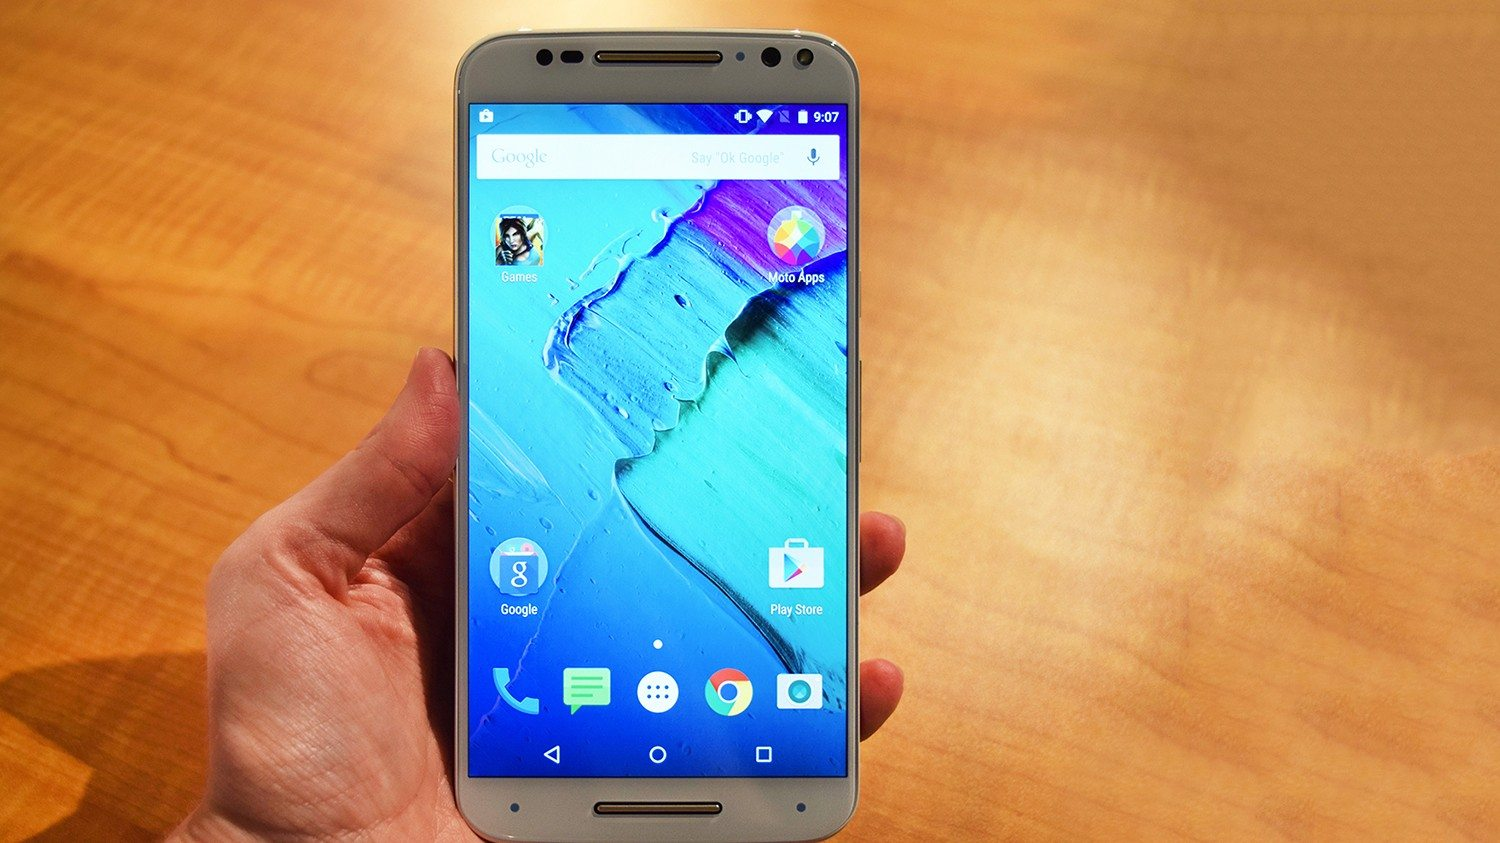 Top 3 Android Motorola Smartphones on the Market